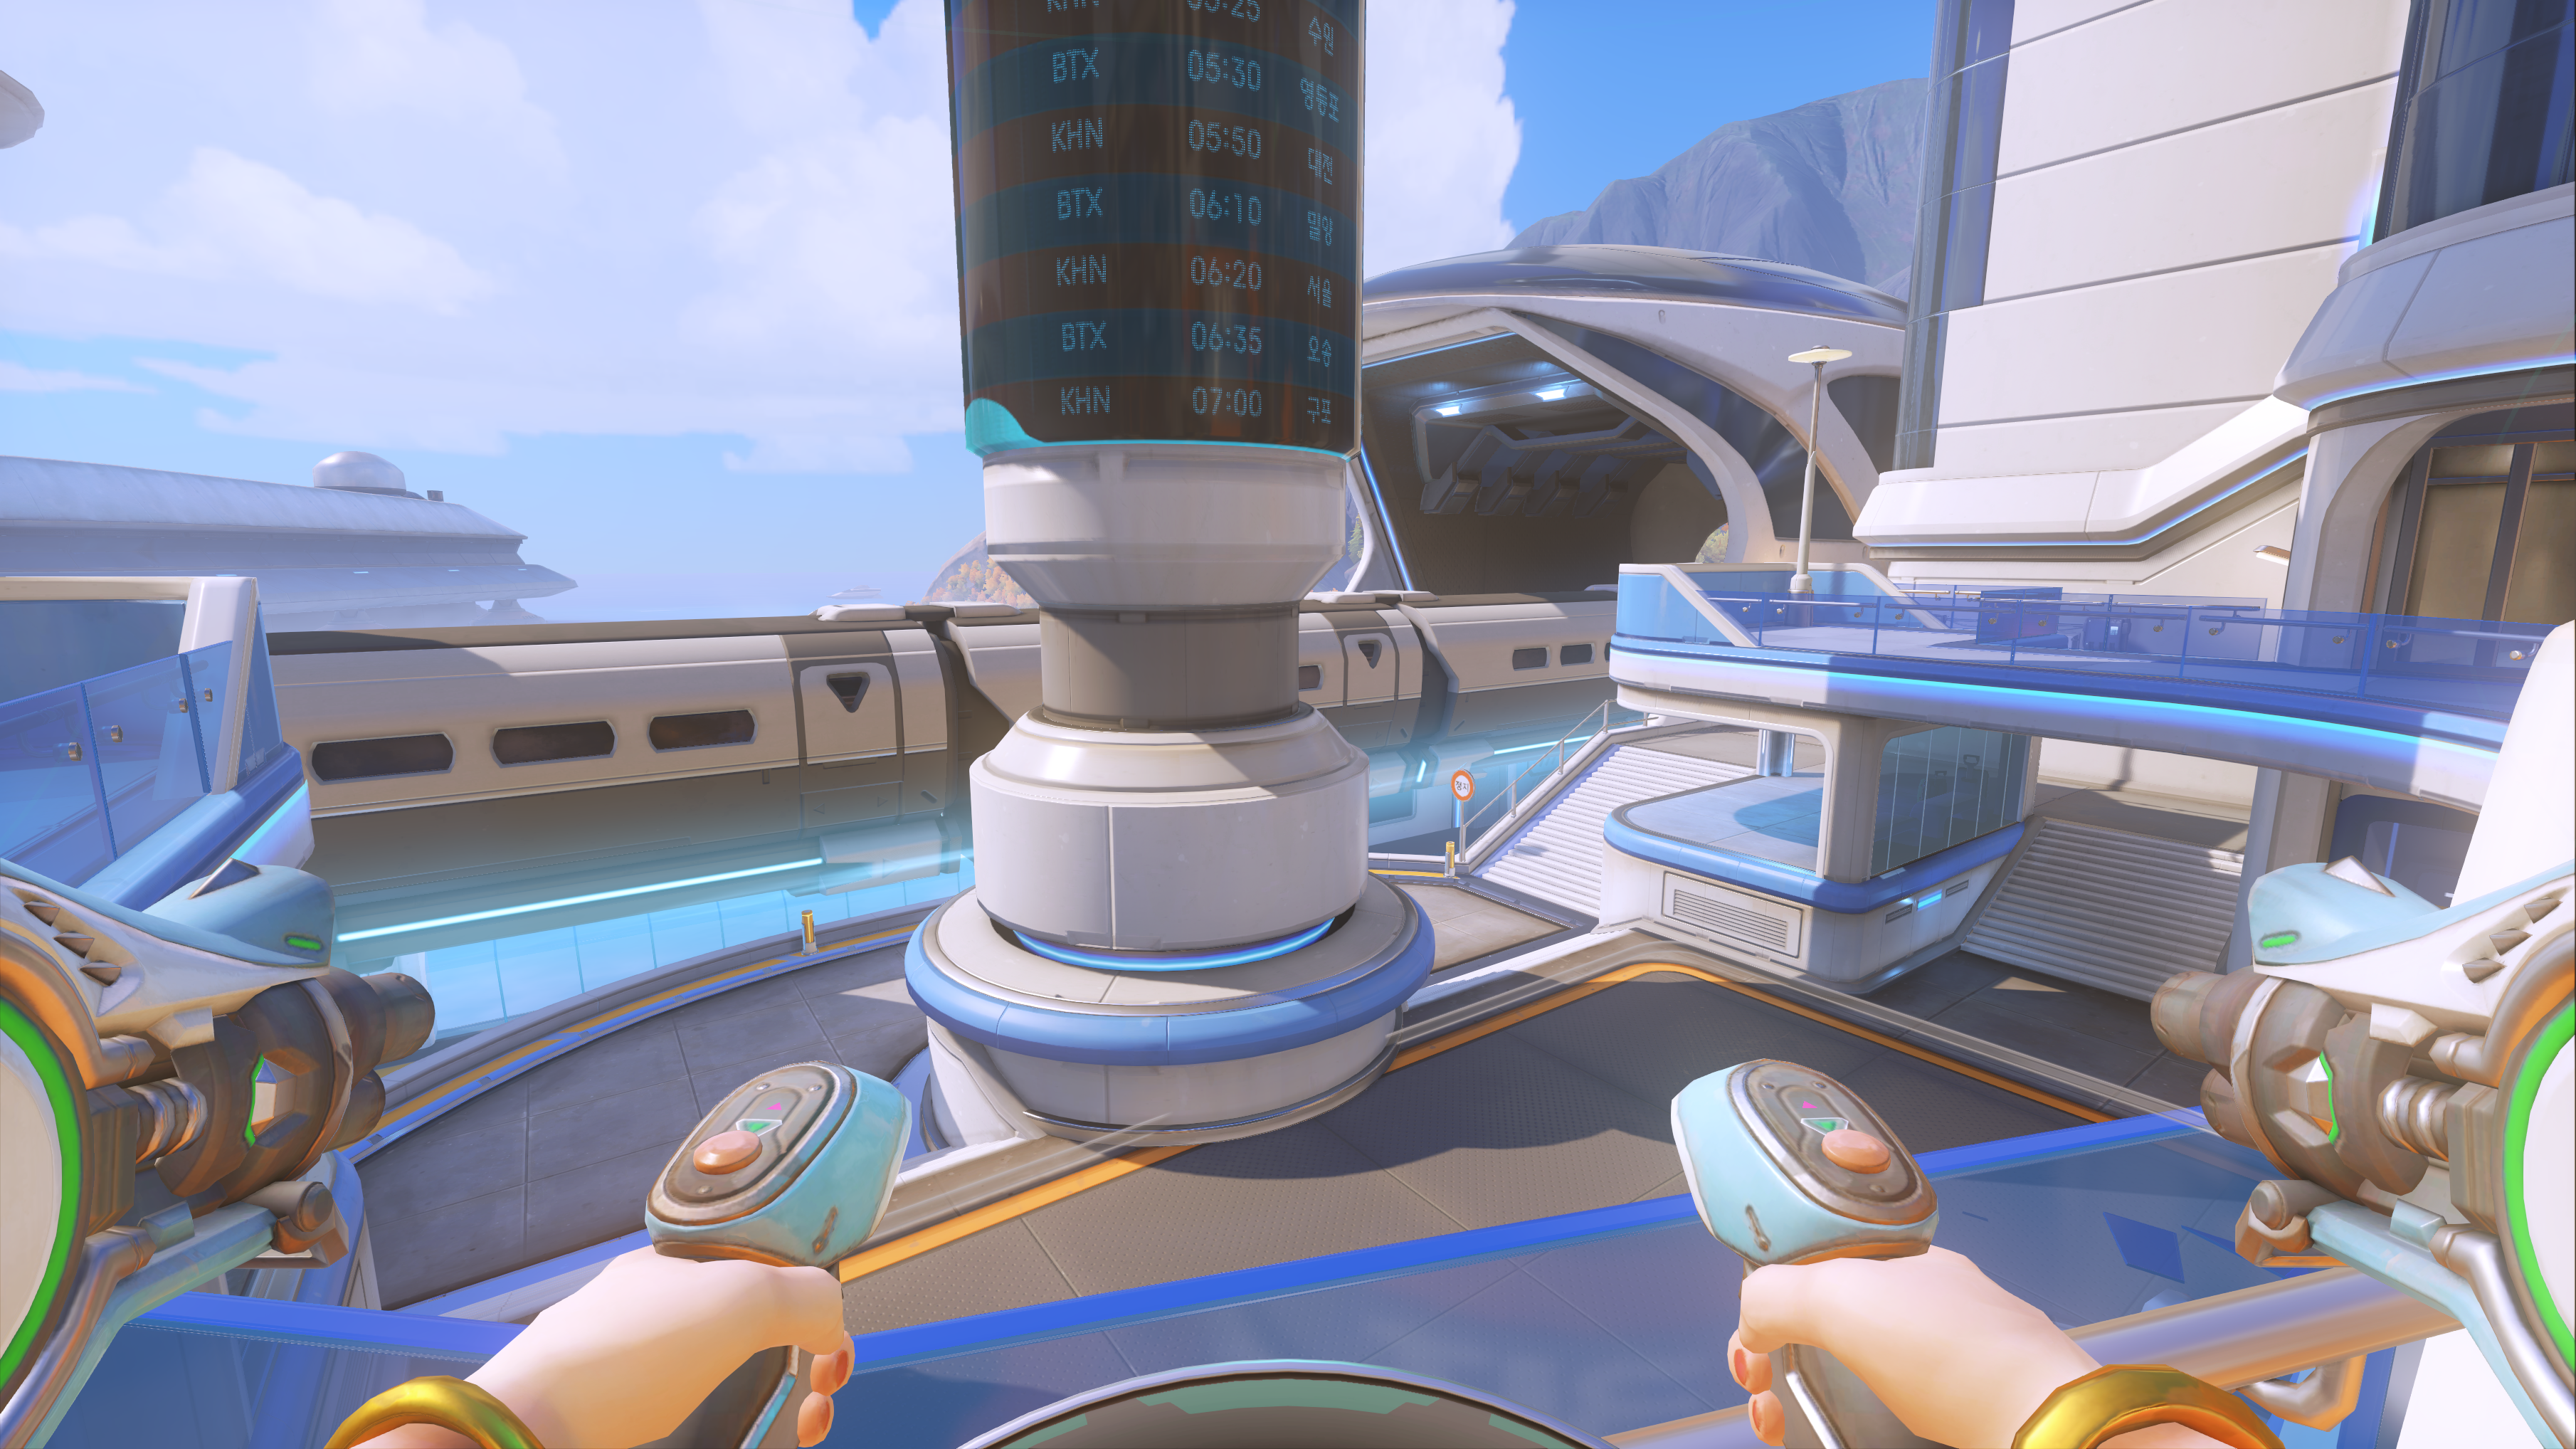 Overwatch's new Busan map is a beautiful homage to Korea